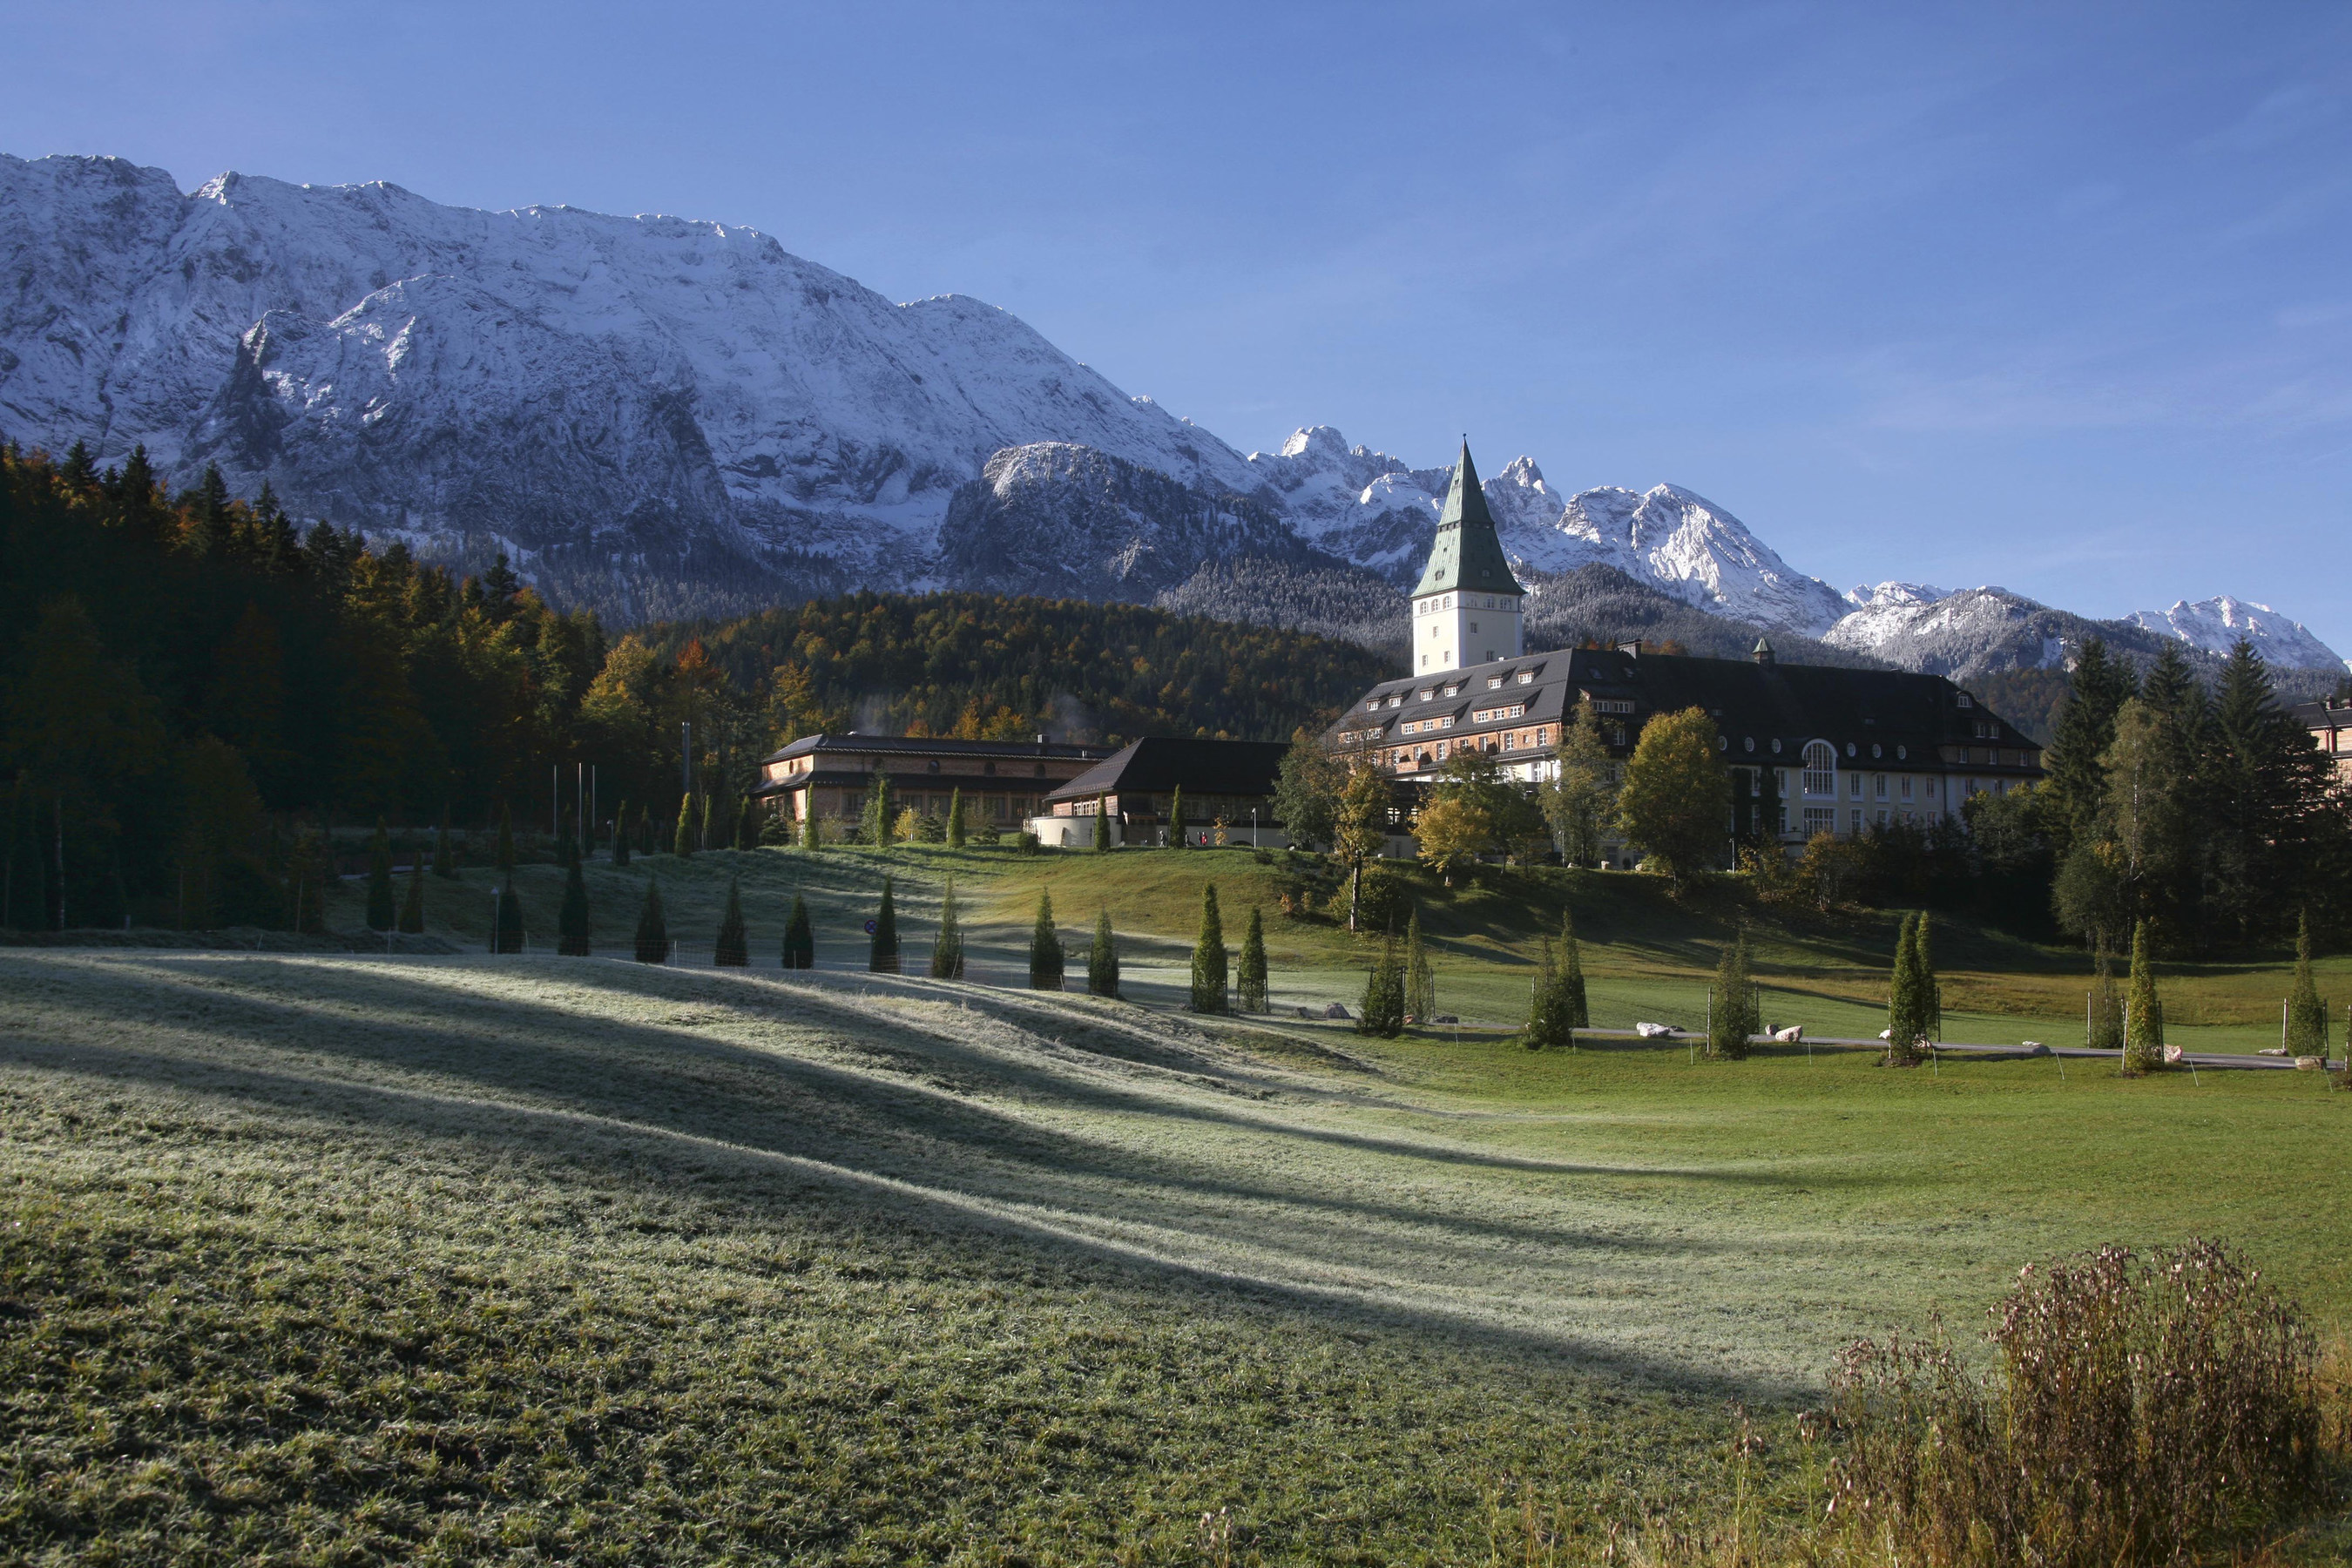 TOTO and the Hotel Schloss Elmau Set the Stage for Global Summit